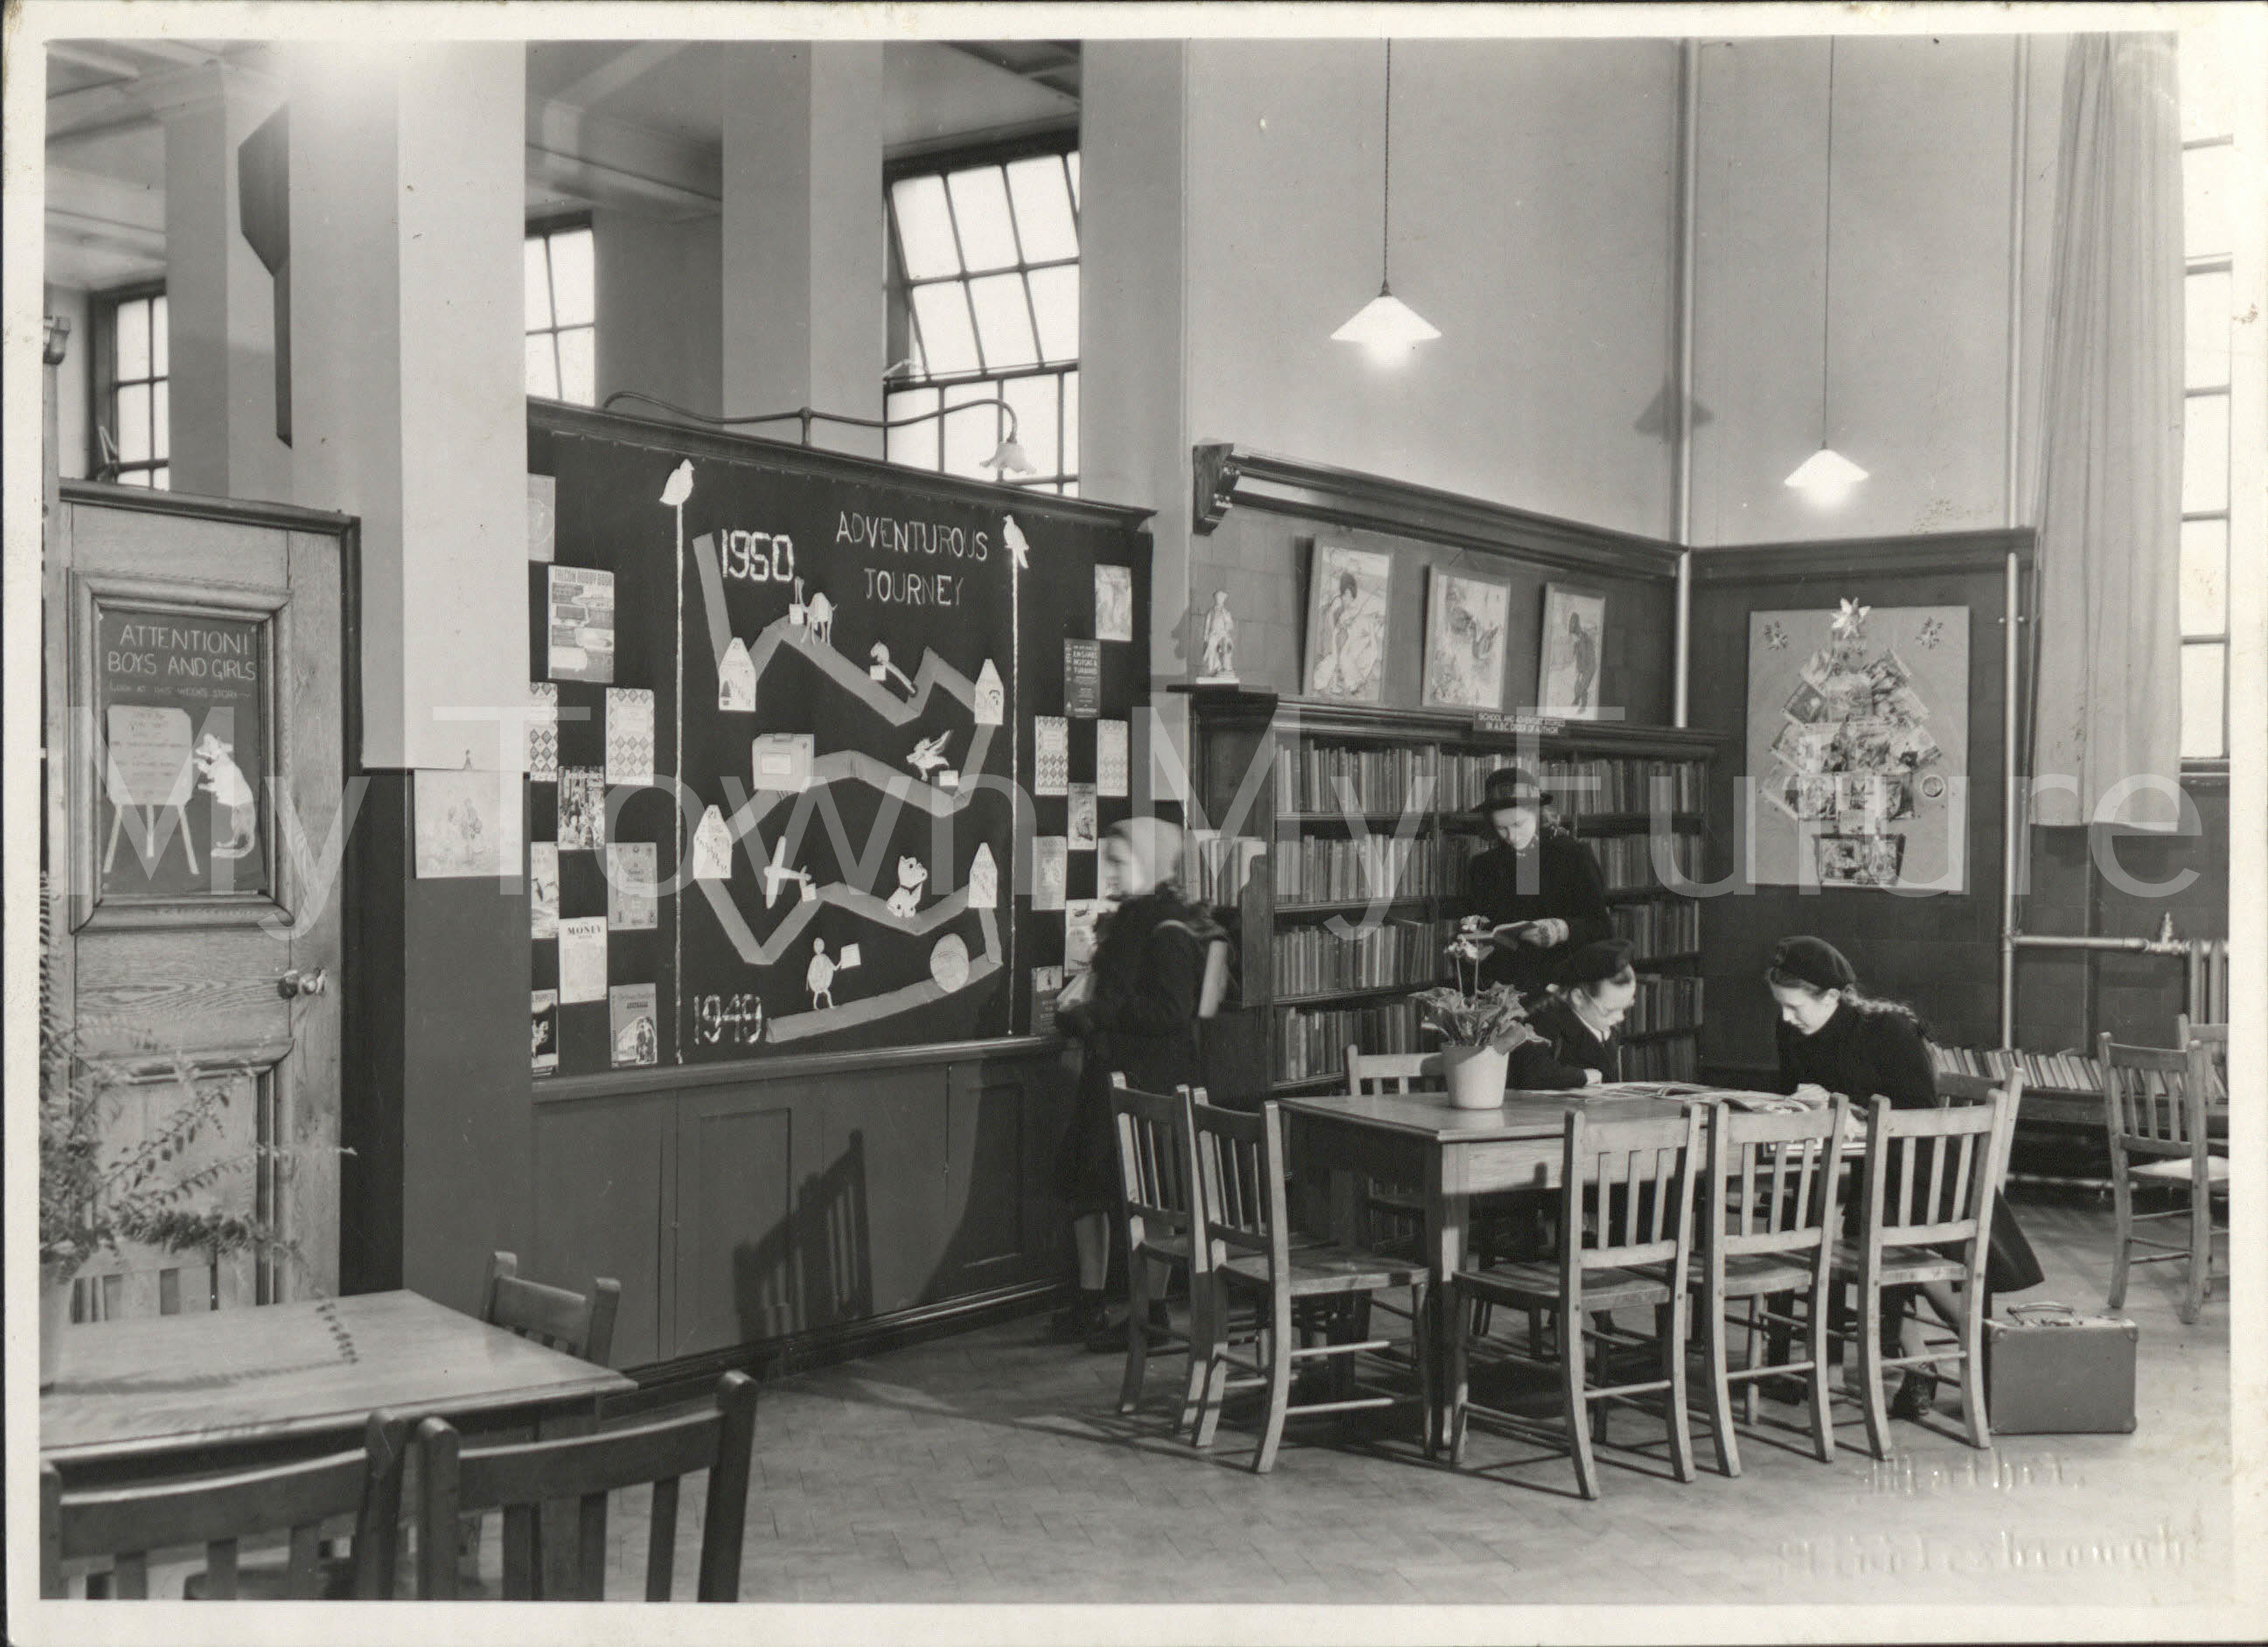 Central Library 1950s.